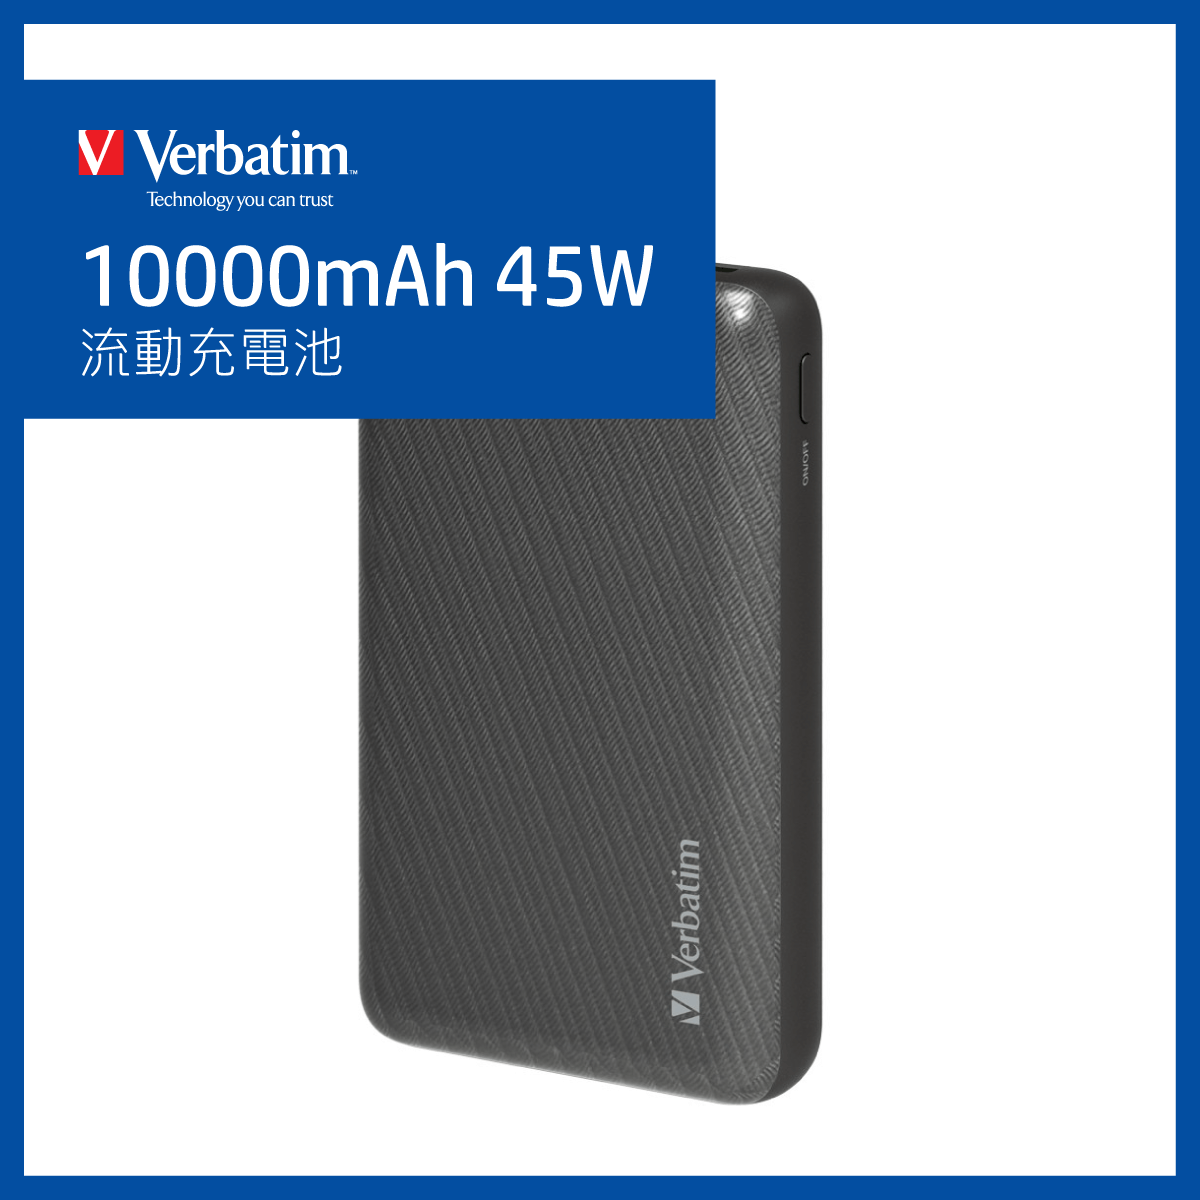 Verbatim 10000mAh 45W Power Pack Grey